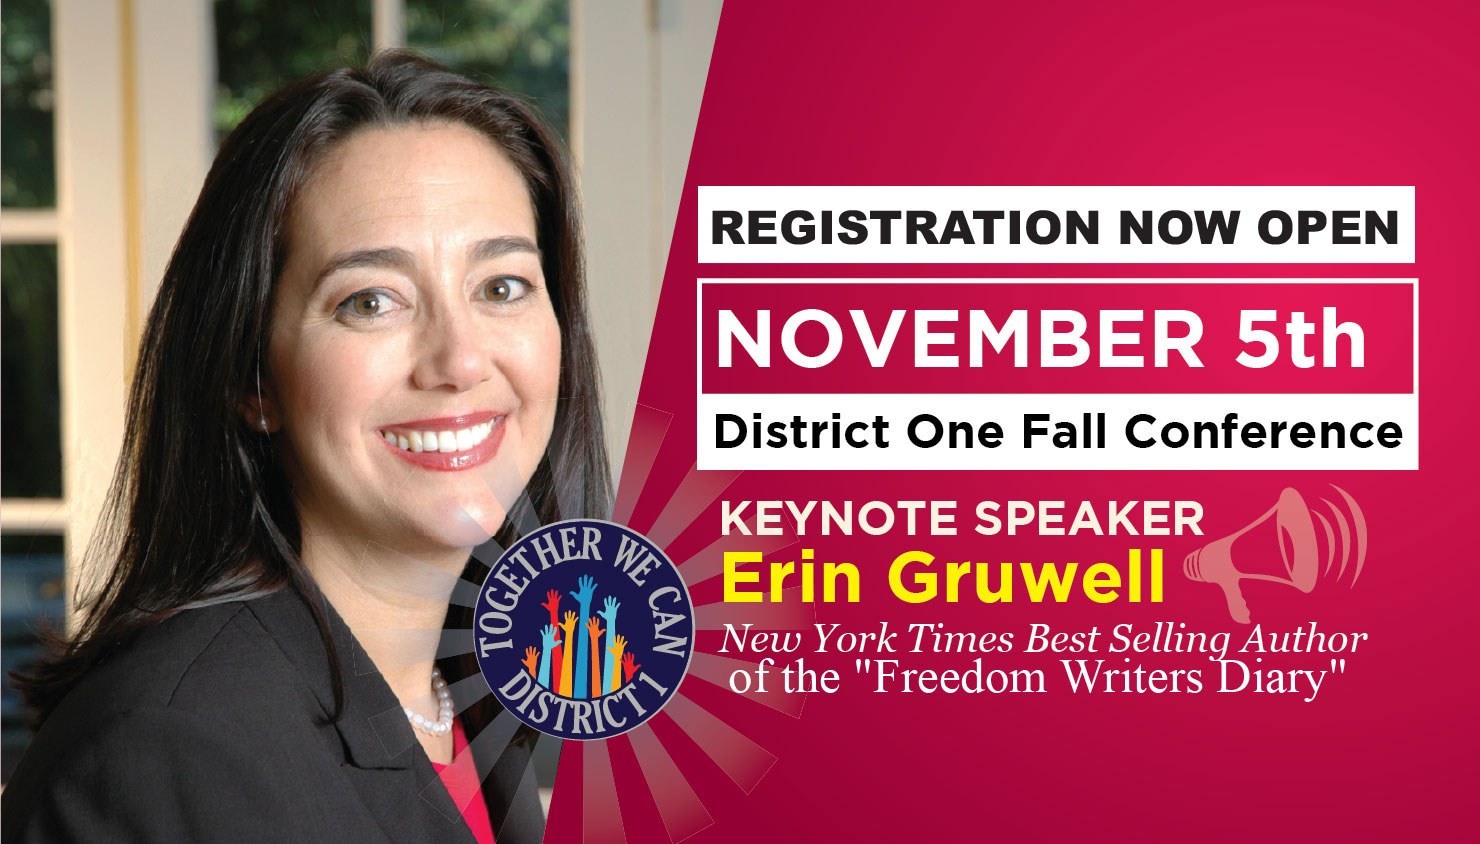 District 1 Conference Registration Now Open.